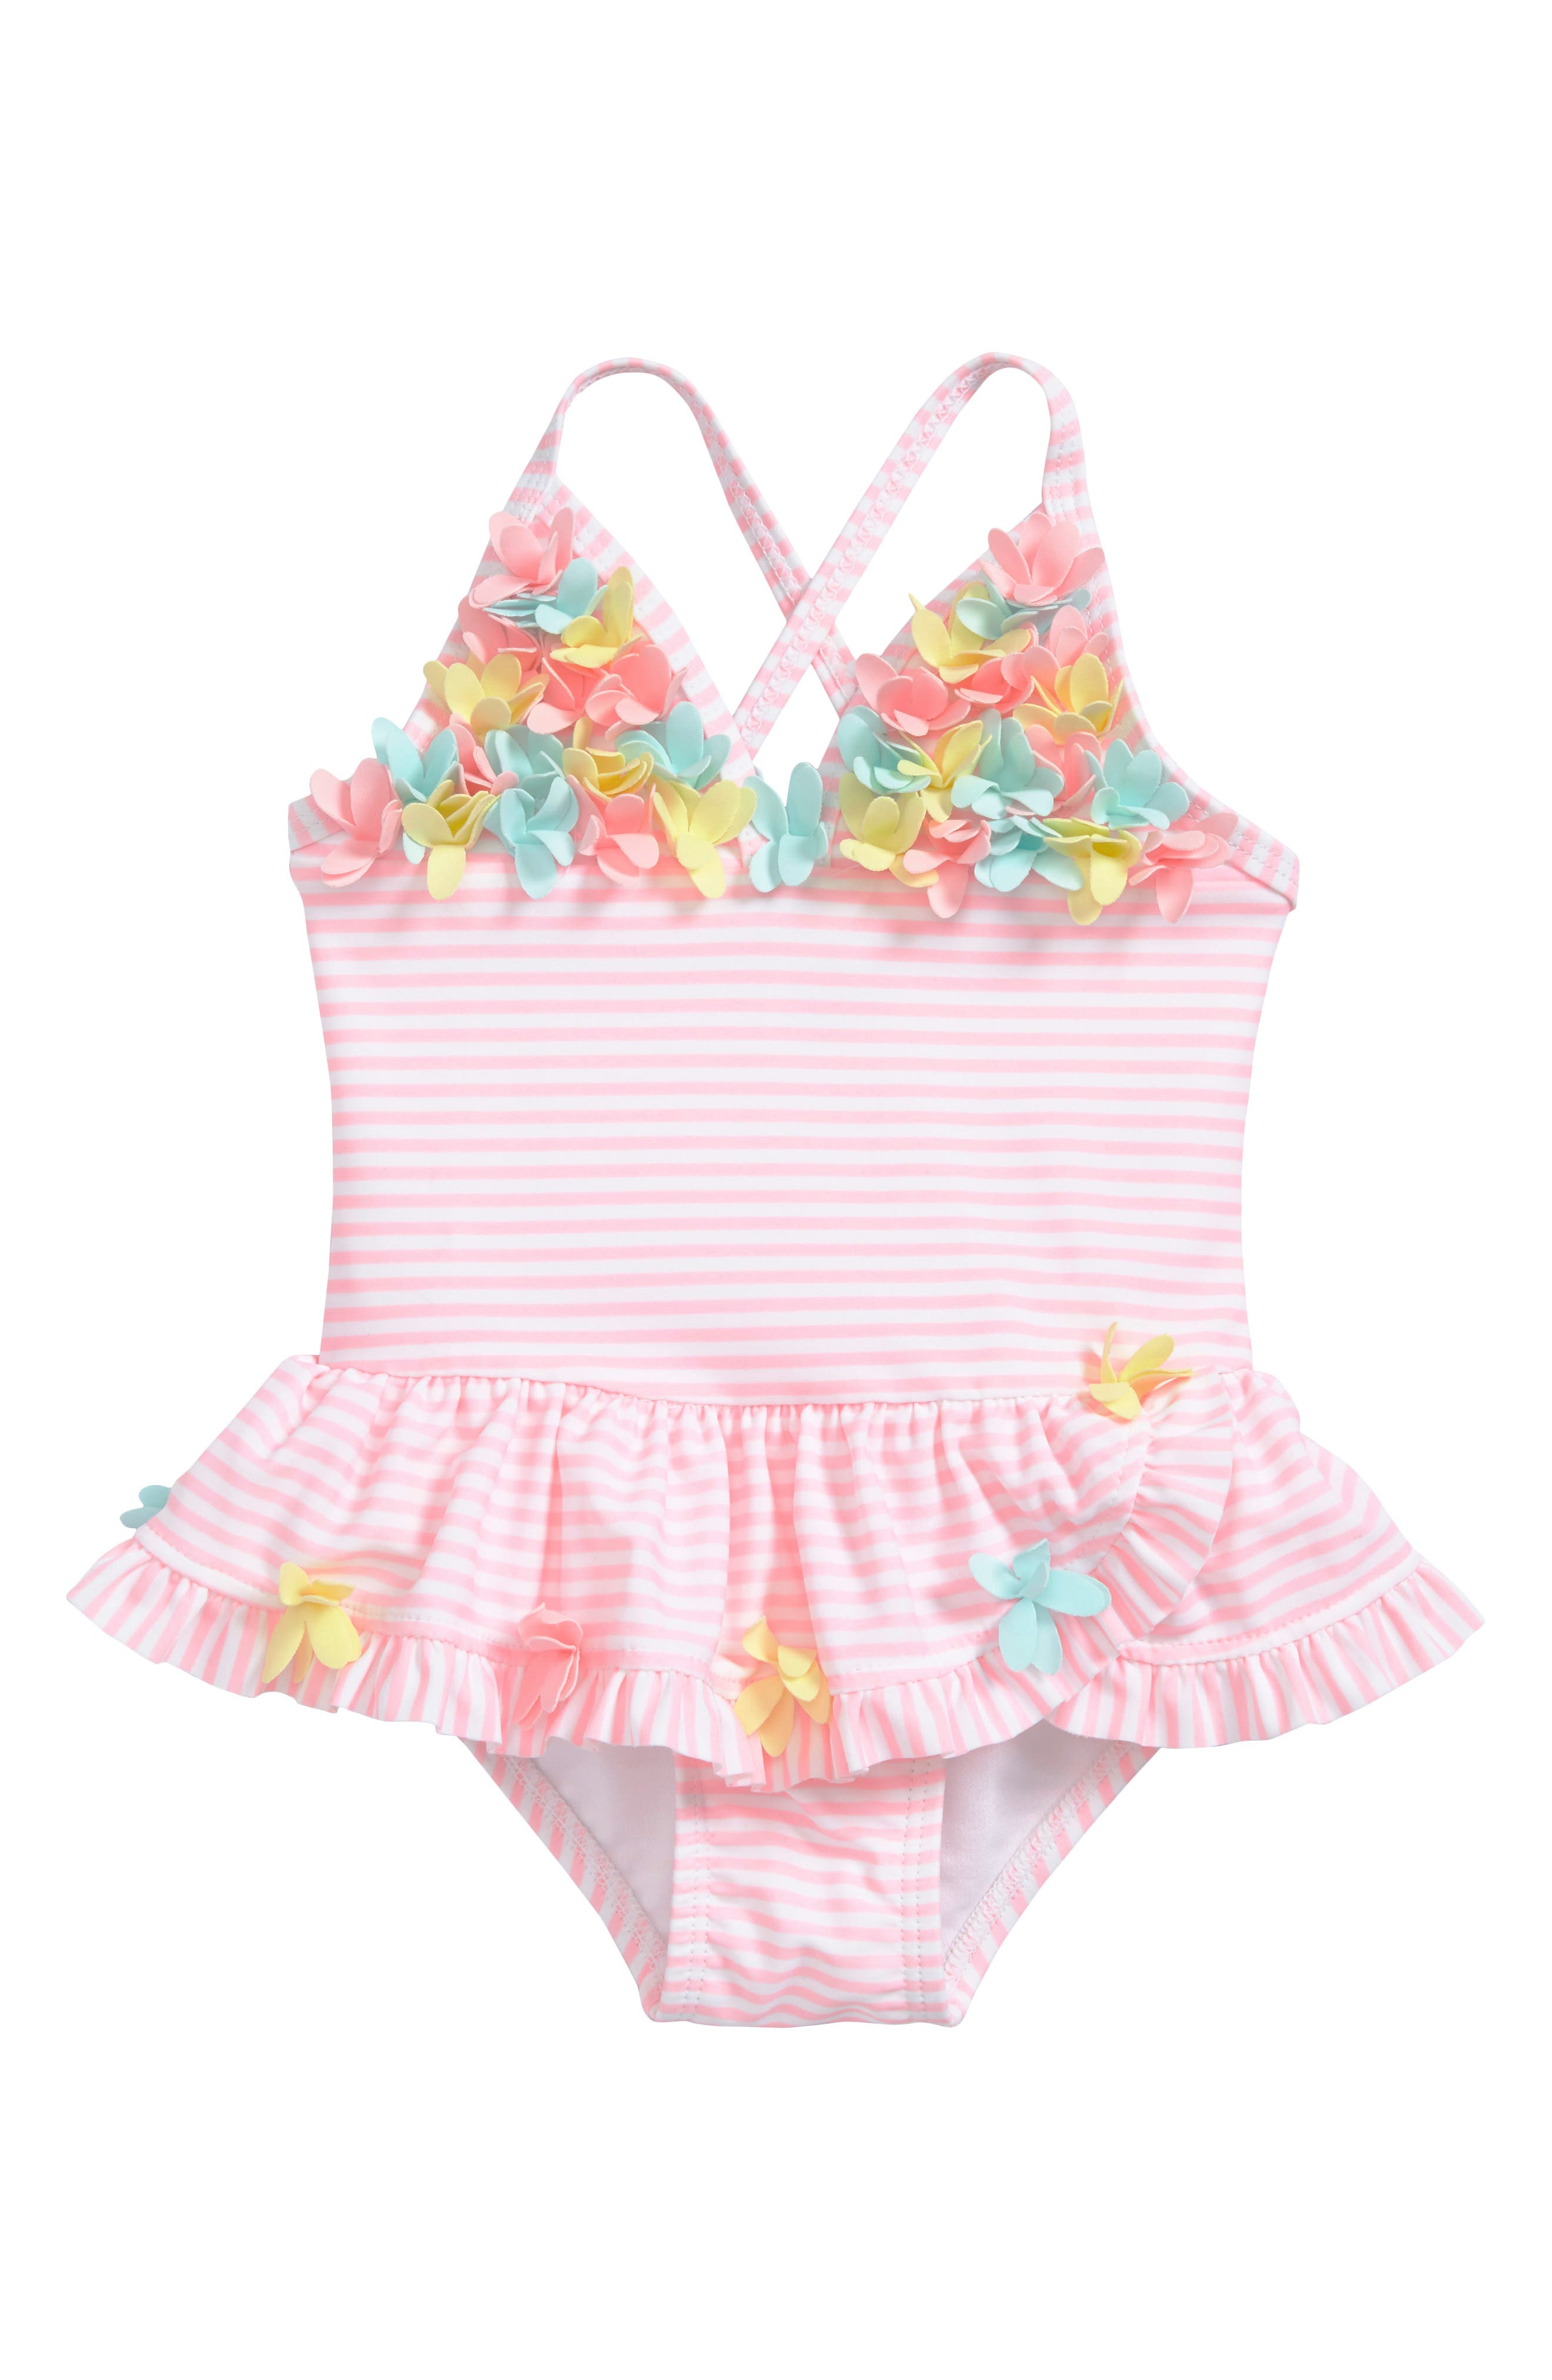 Alternate Image 1 Selected - Little Me Flower Appliqué Skirted One-Piece Swimsuit (Baby Girls)